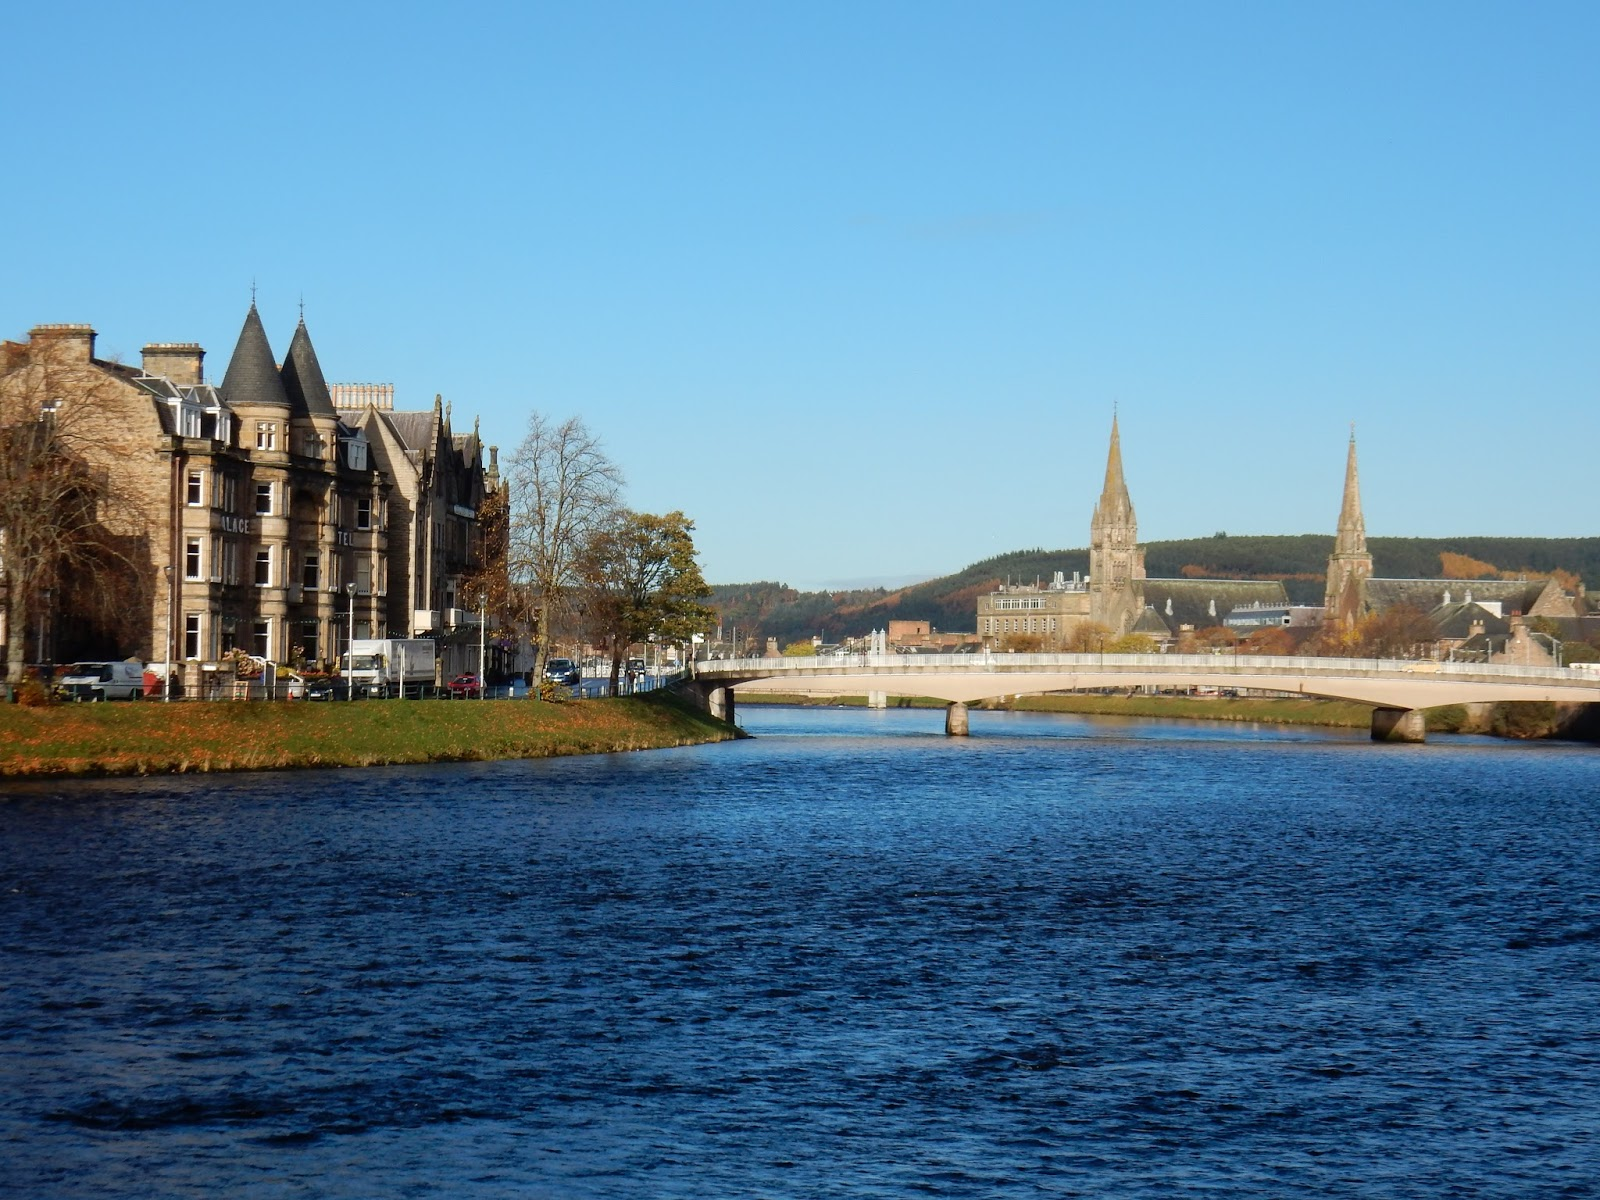 Inverness, la lejana capital de las Highlands